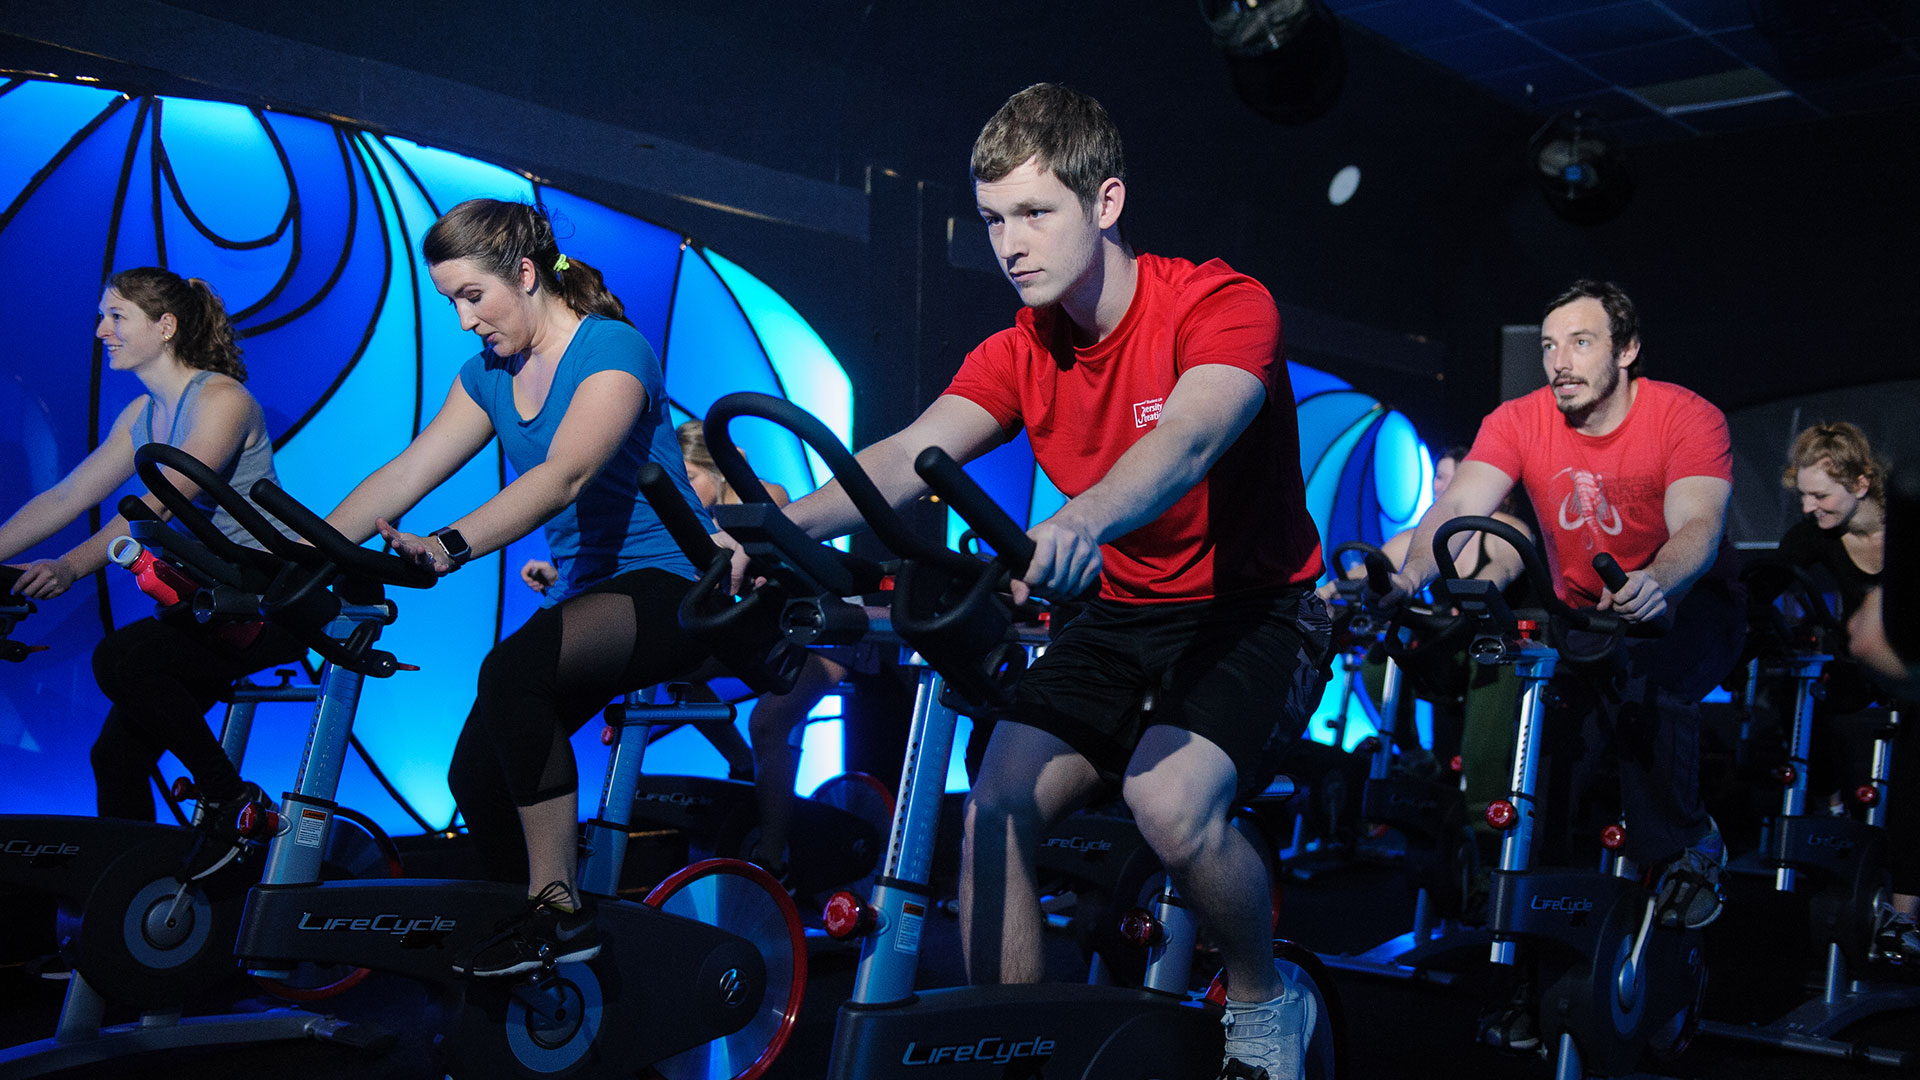 Group fitness cycling class.